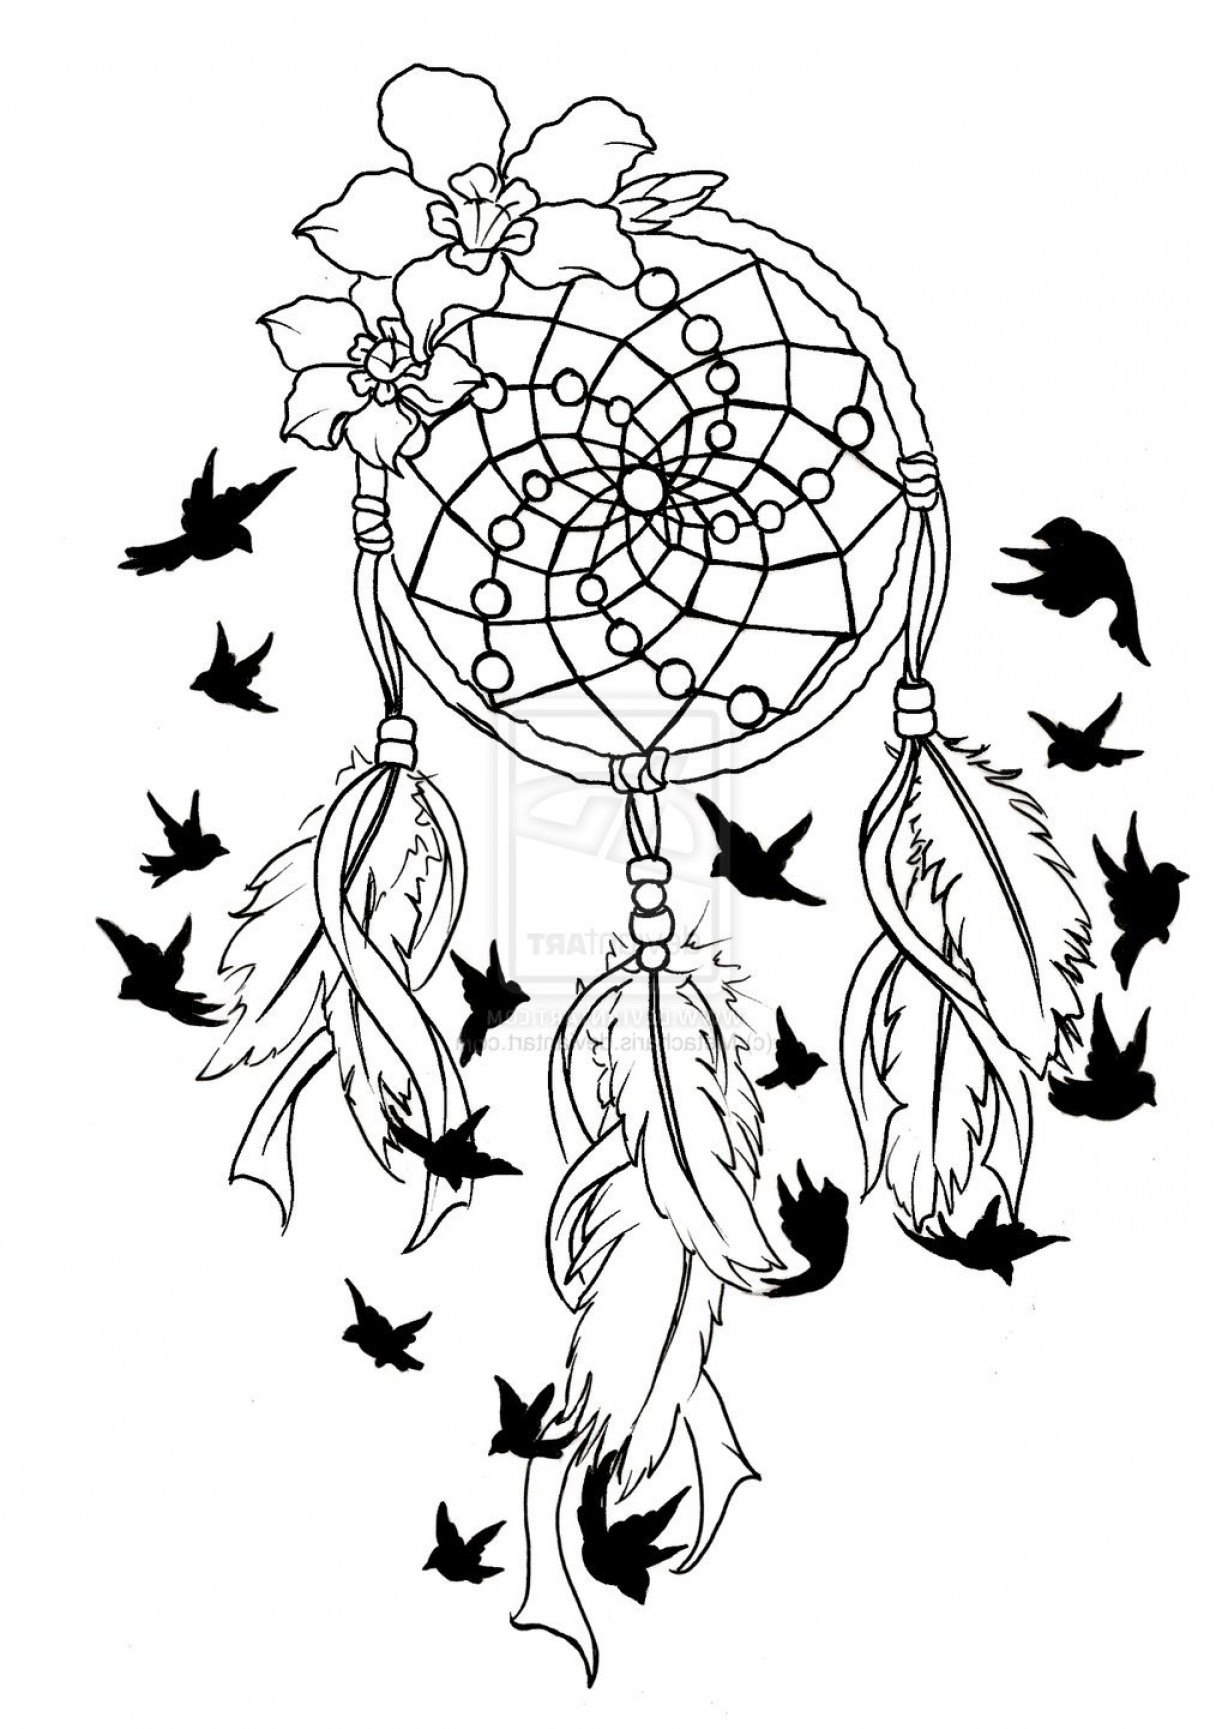 Dreamcatcher Tattoo Vector: Dreamcatcher Tattoo Designs Johny Fit Dreamcatcher Tattoo Designs Tattoo Dream Catchers Design